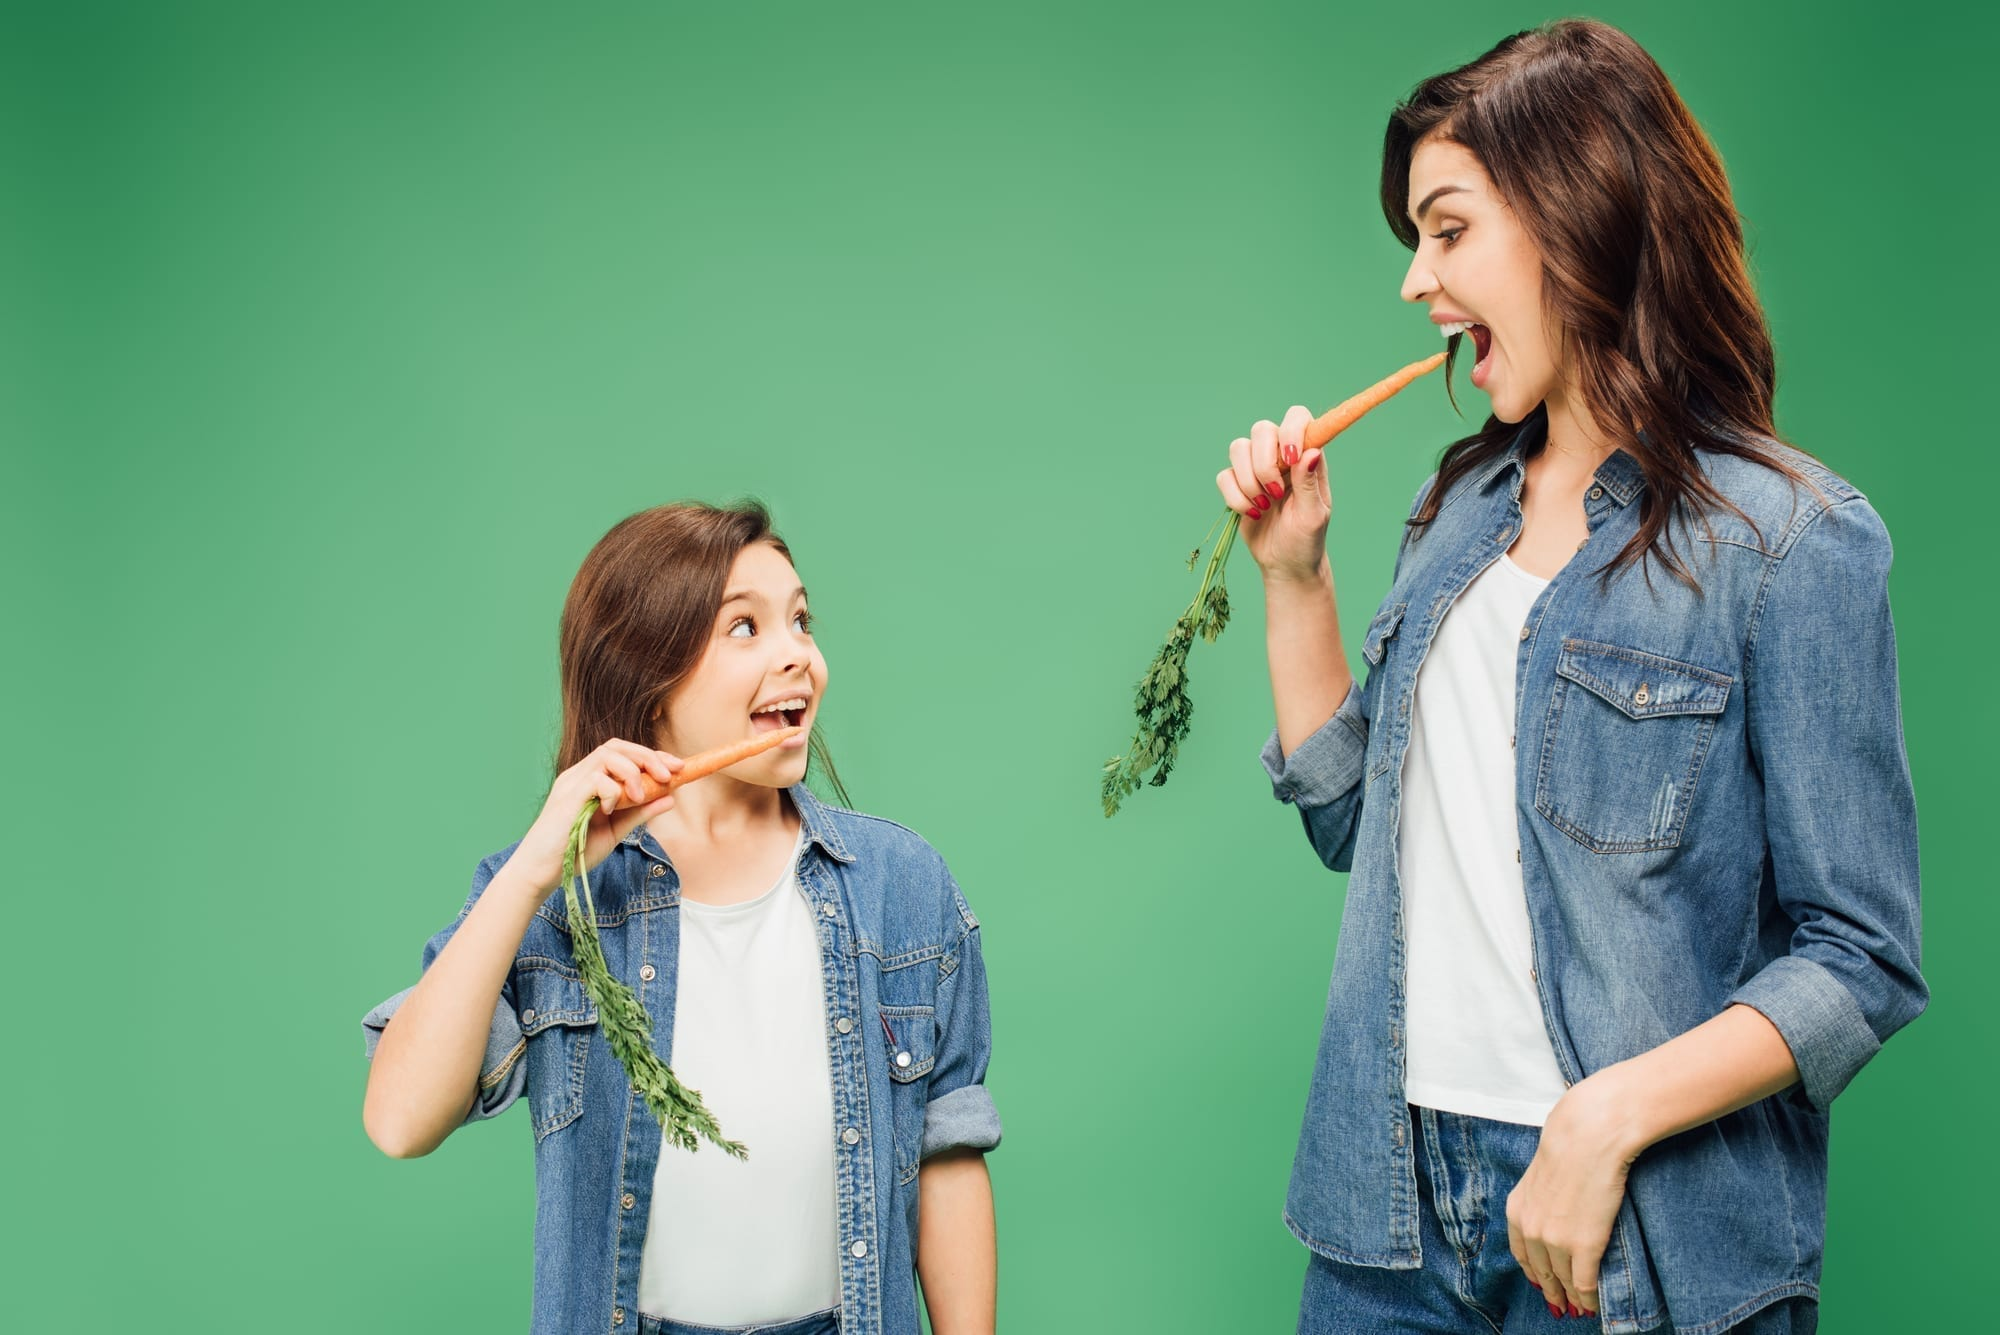 mom and daughter eating carrots on green background